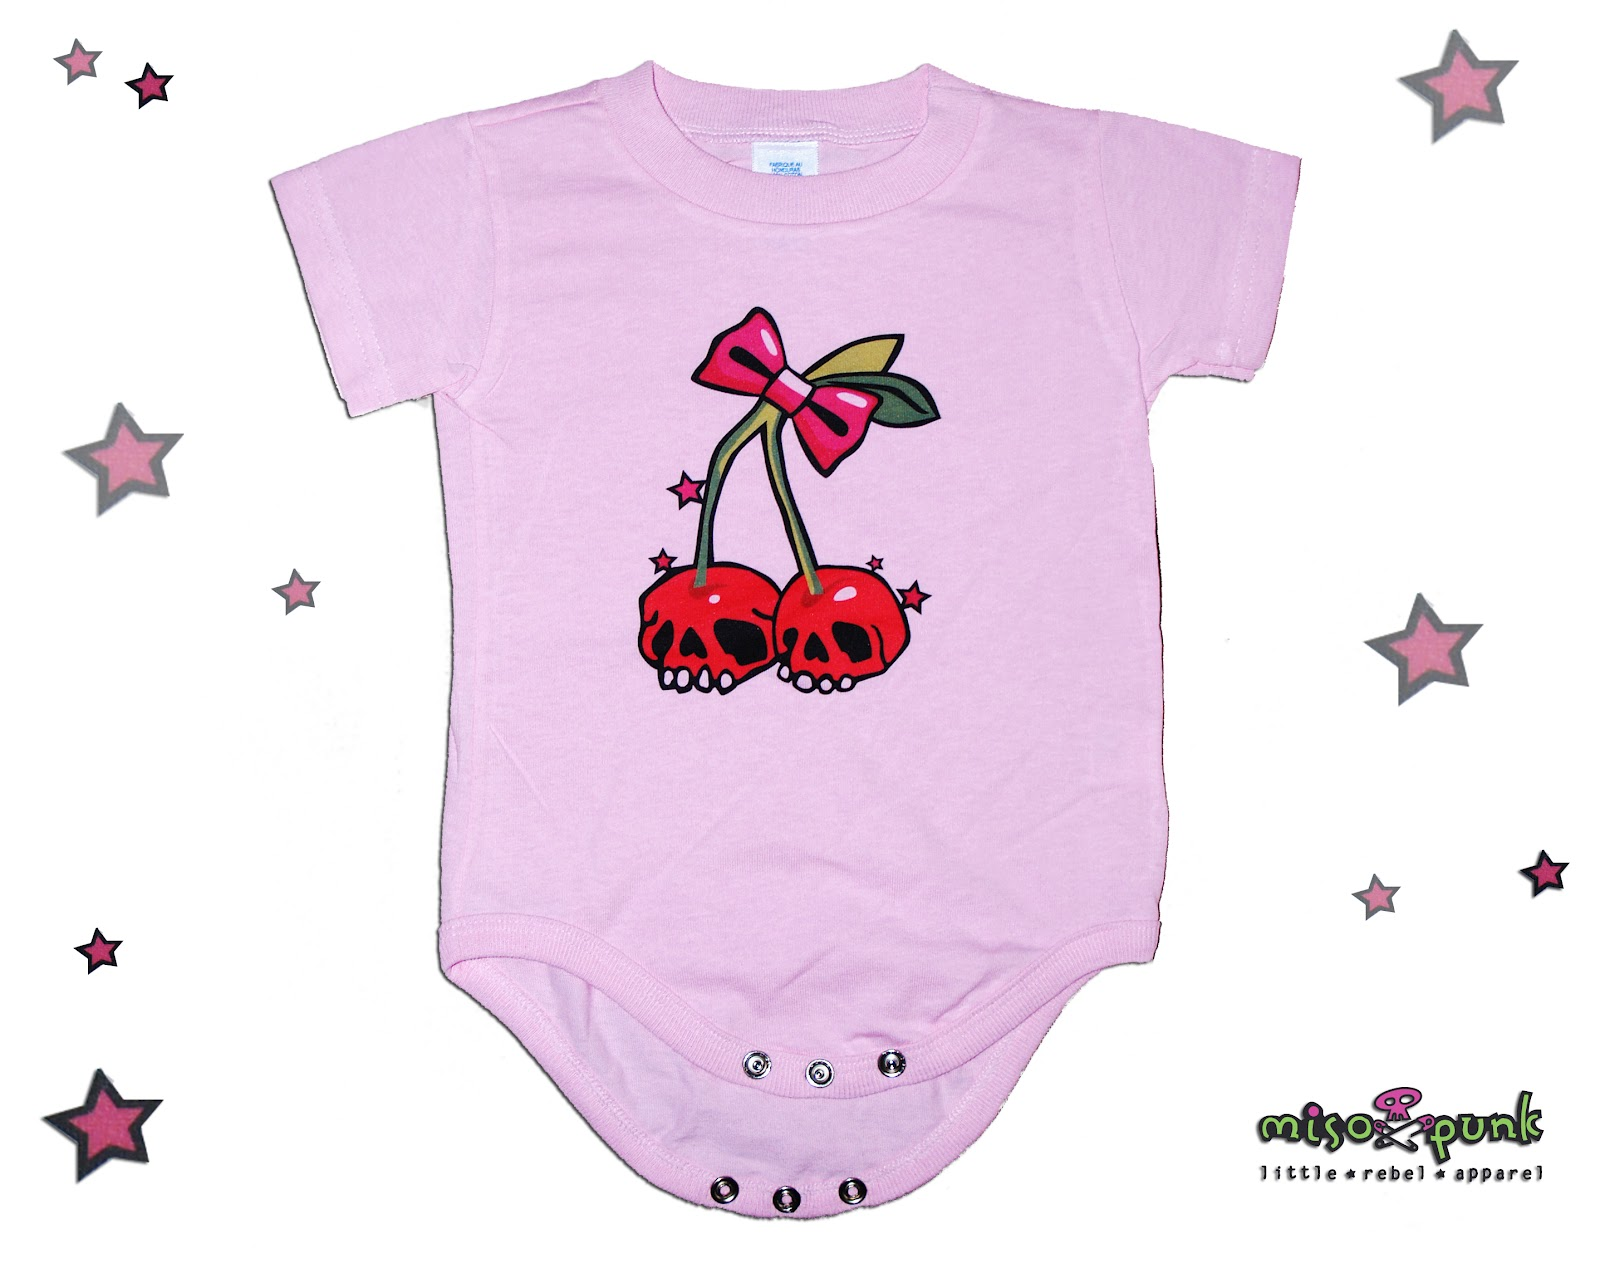 Punk Baby Clothing Rockabilly Miso Cherry Skulls esie and Tee Shirt